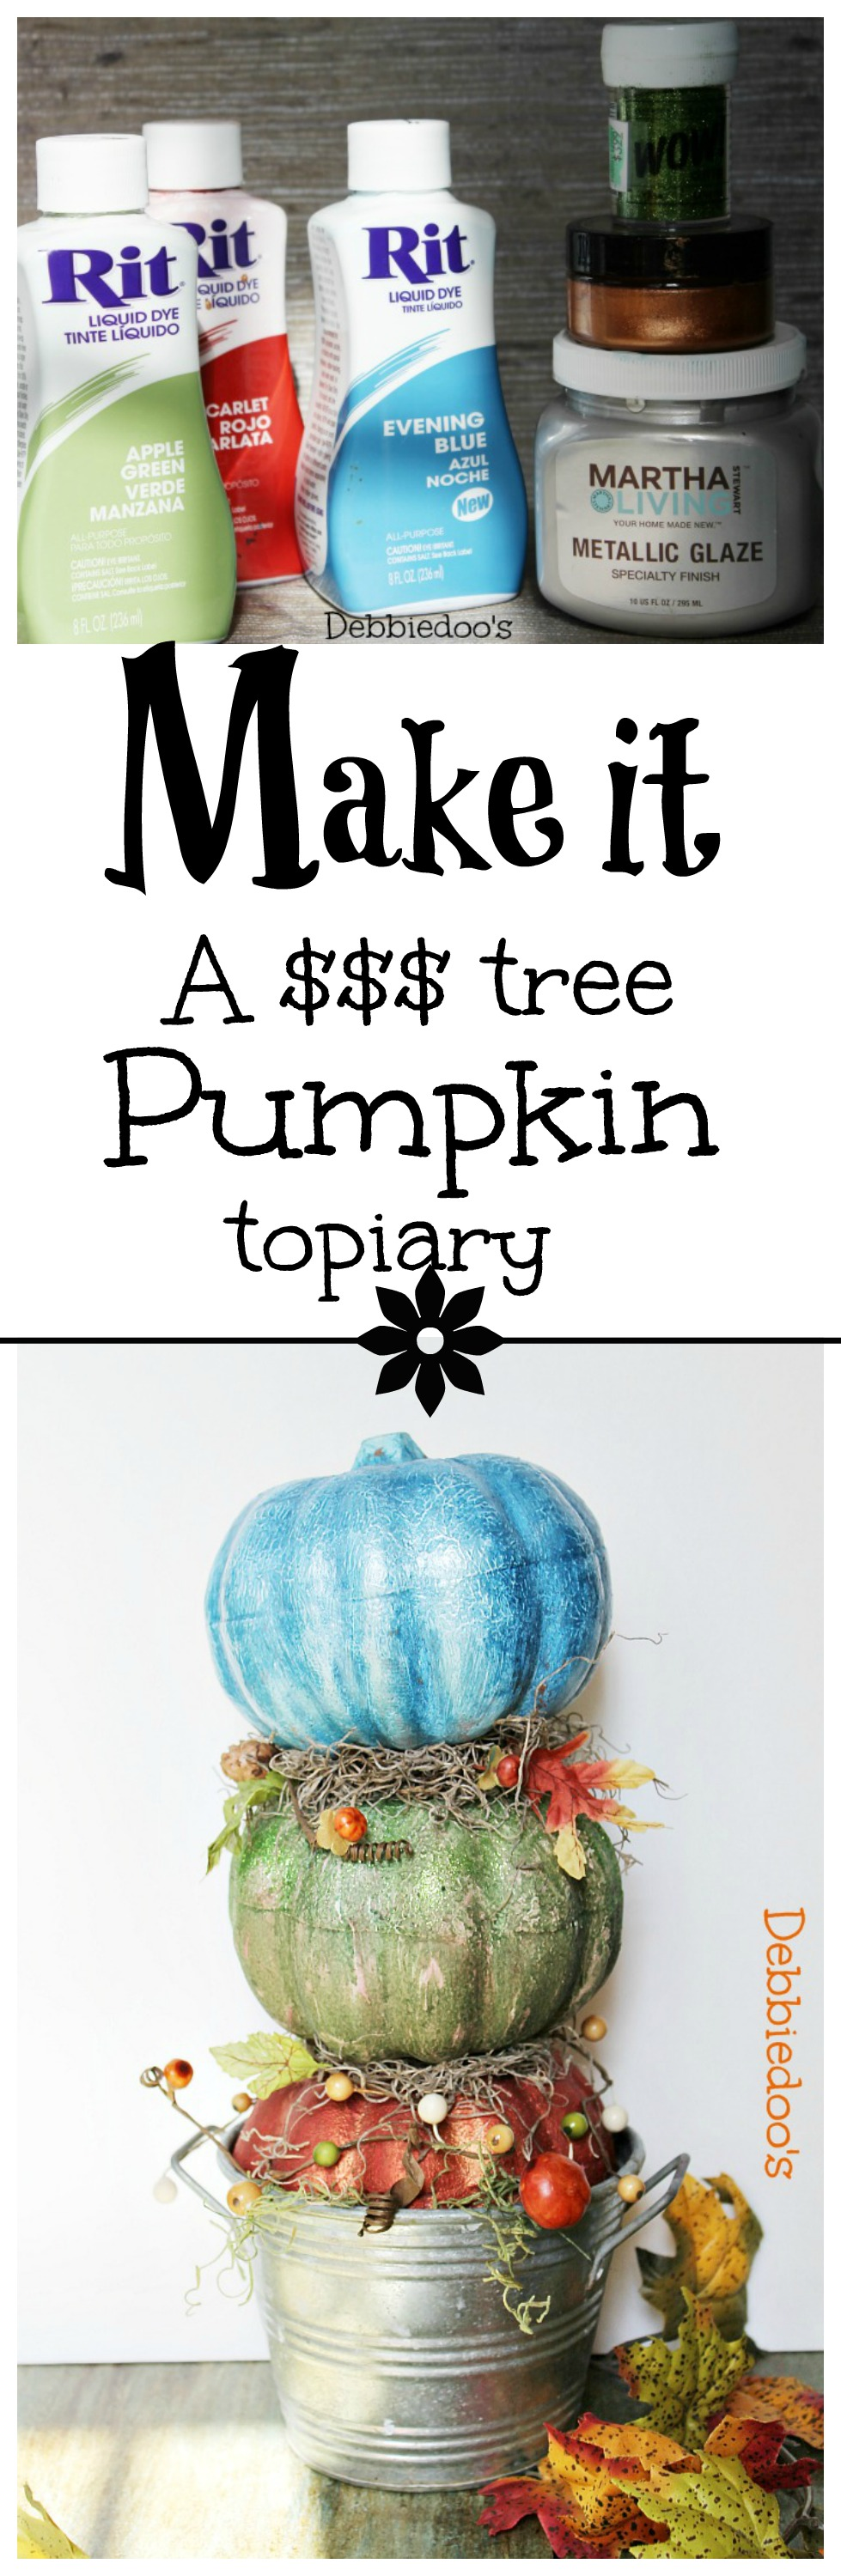 How to make a dollar tree pumpkin topiary and paint your pumpkins with rit dye